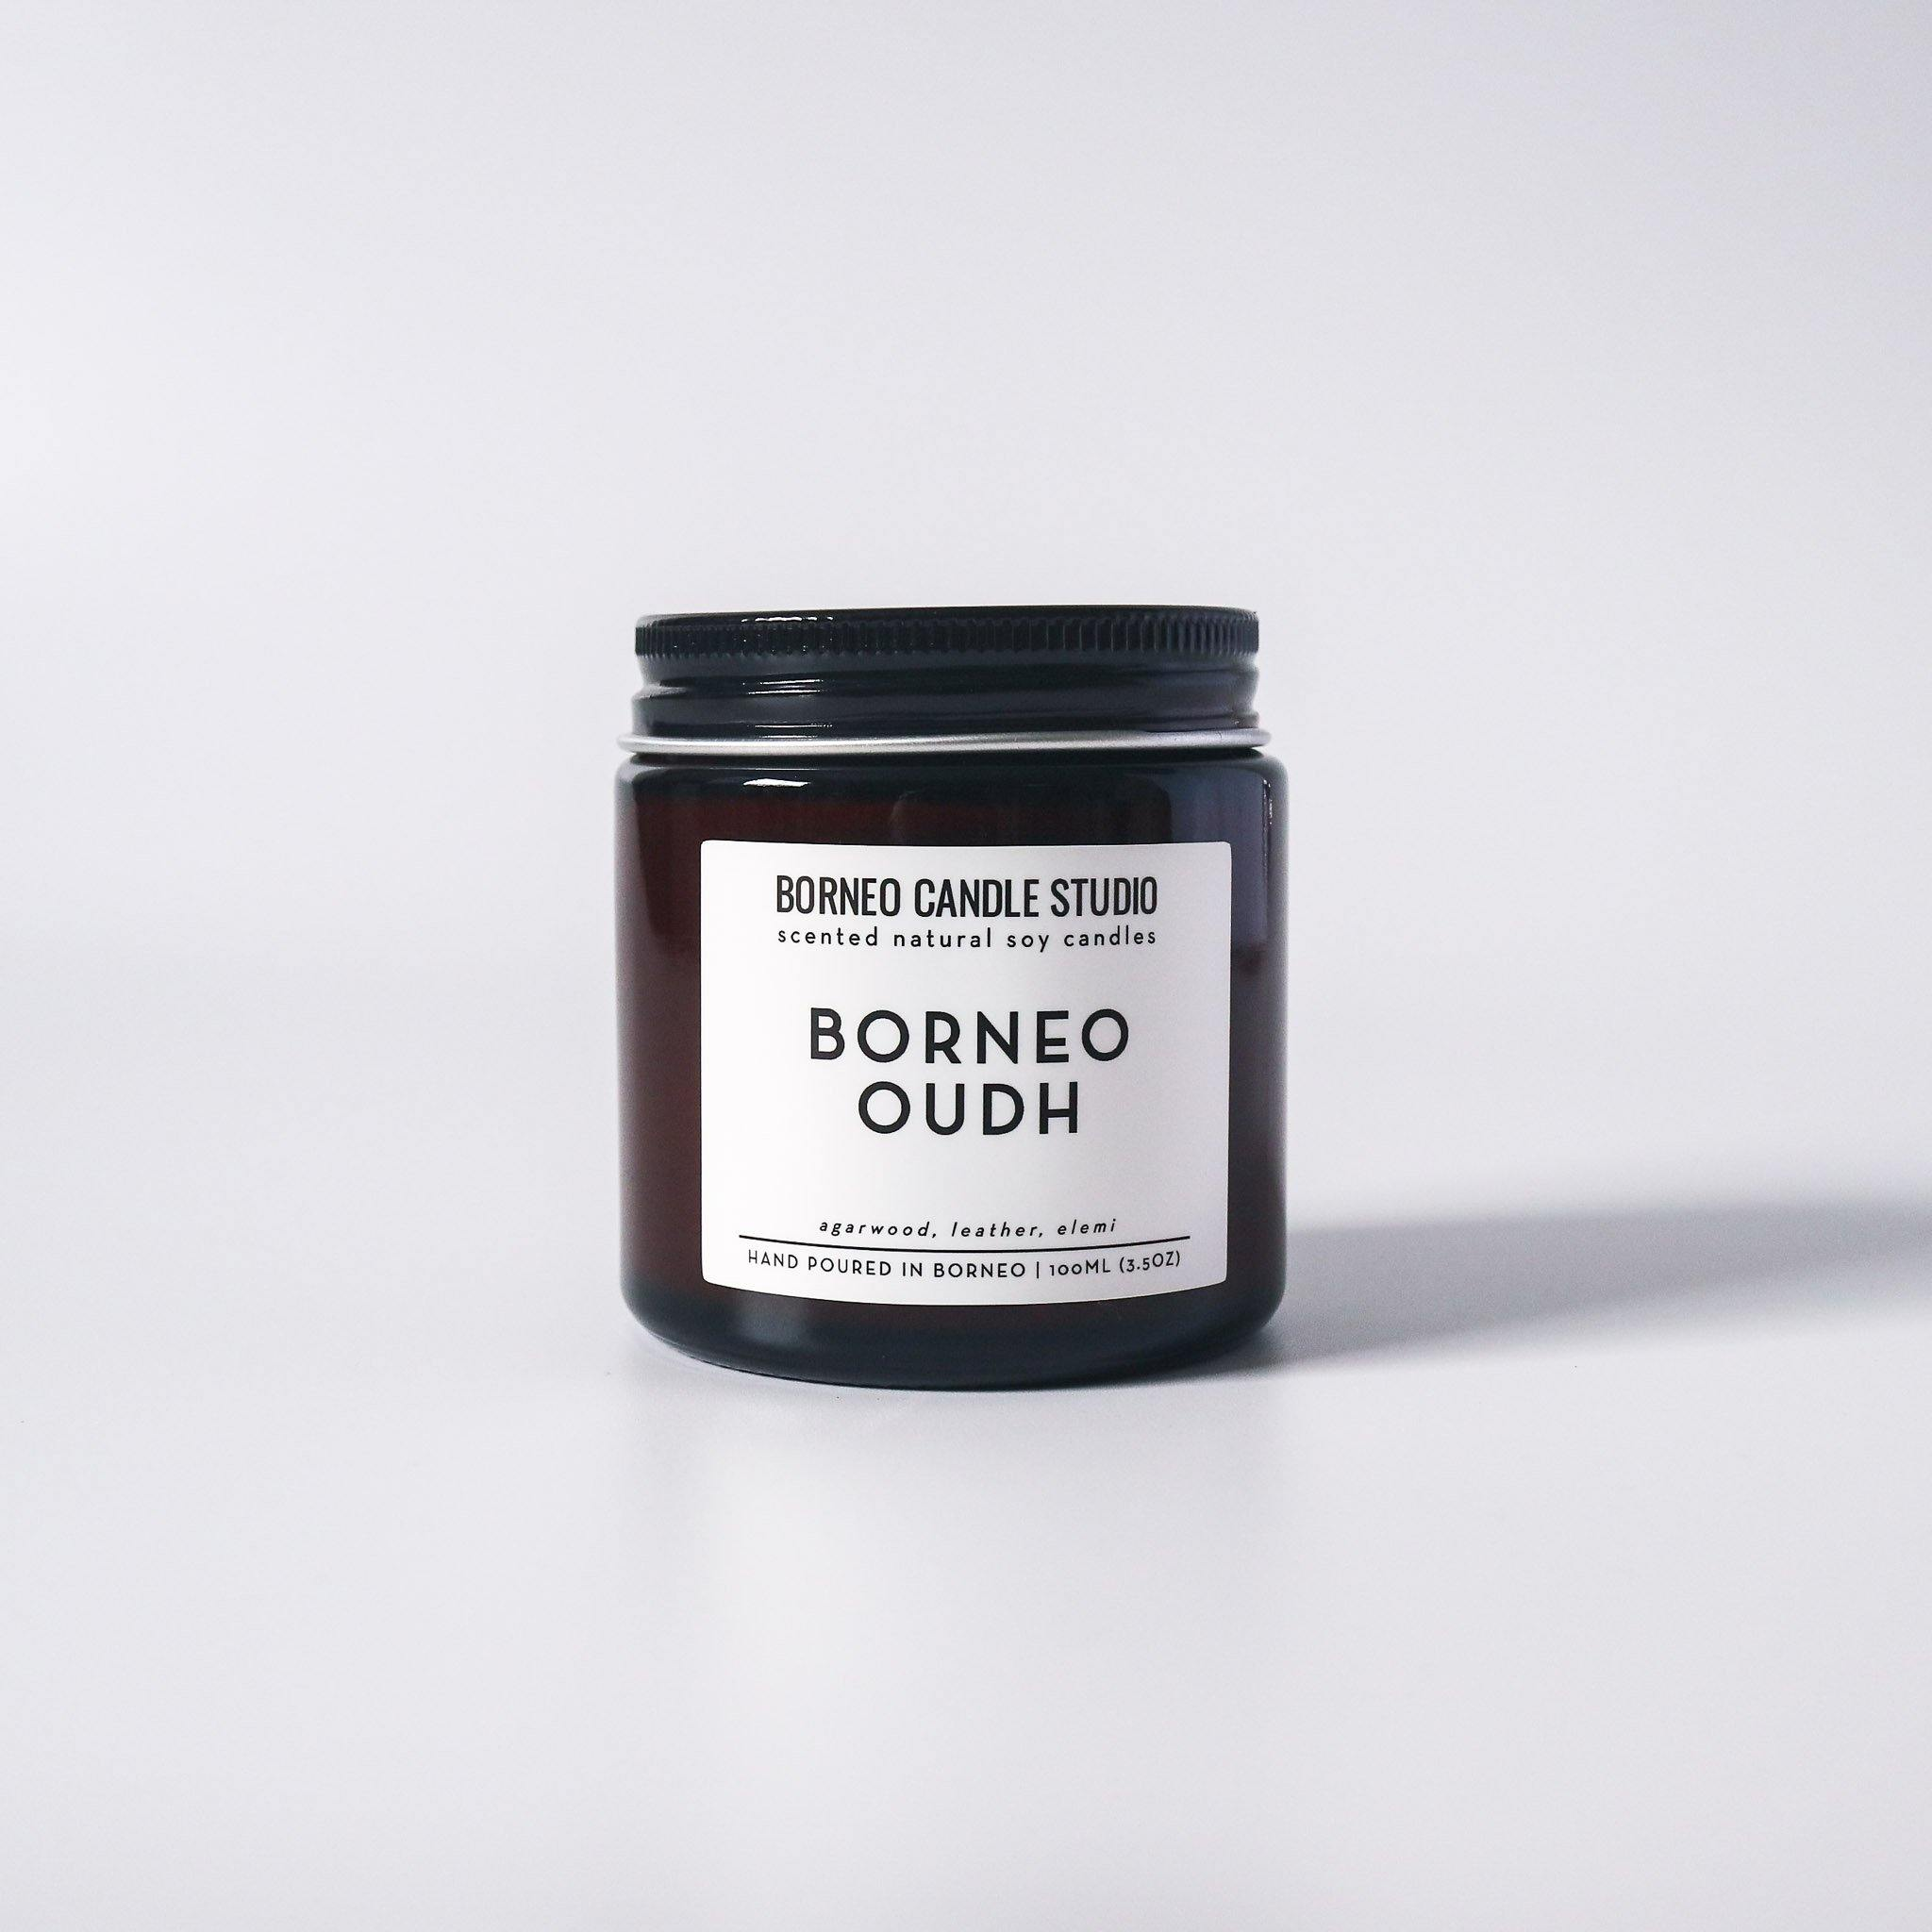 Borneo Oudh Soy Candle - agarwood, leather, elemi